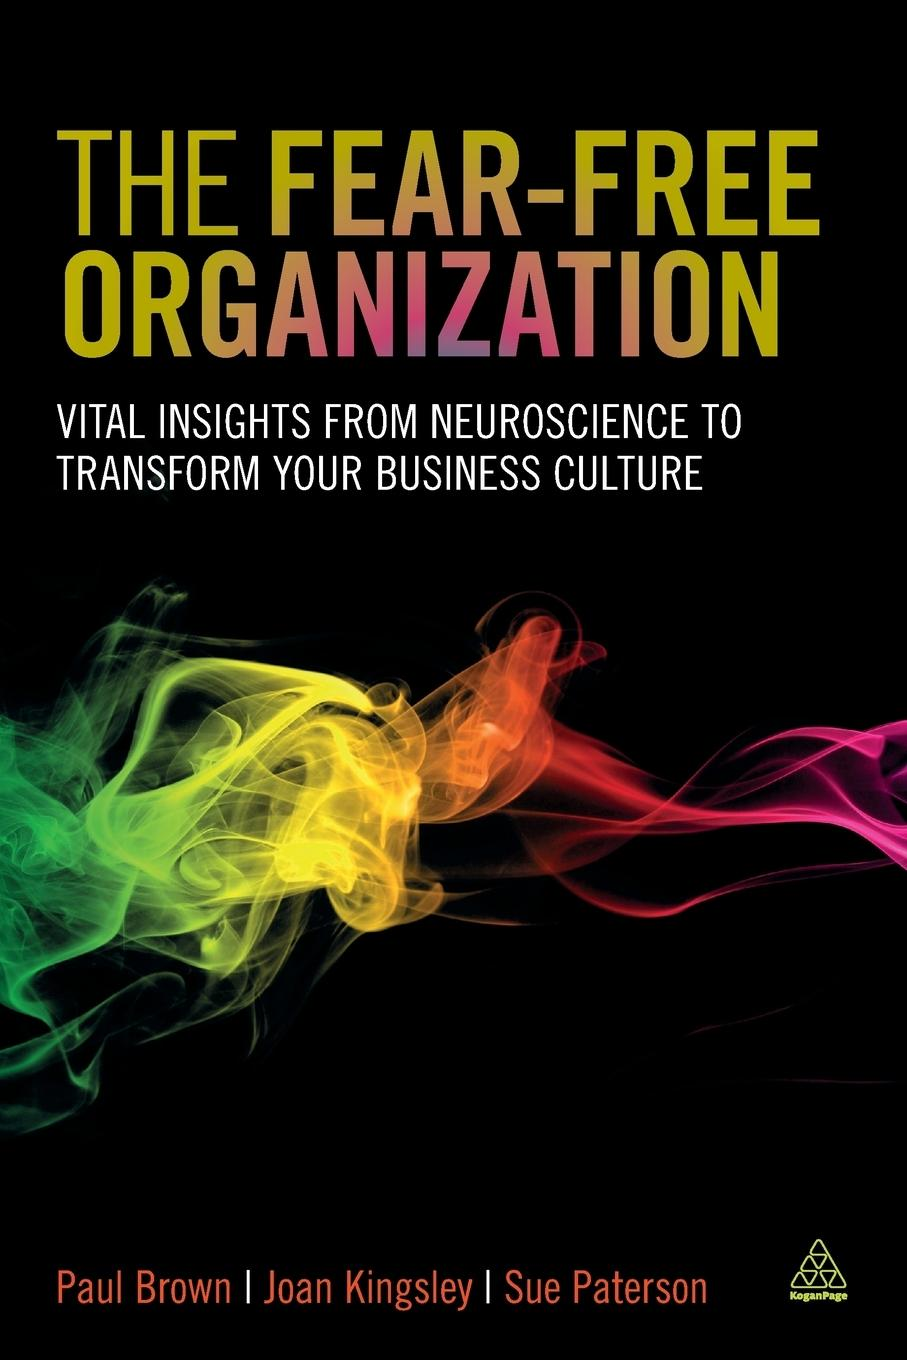 Fear-Free Organization  Vital Insights from Neuroscience to Transform Your Business Culture  Paul Brown  Taschenbuch  Englisch  2015